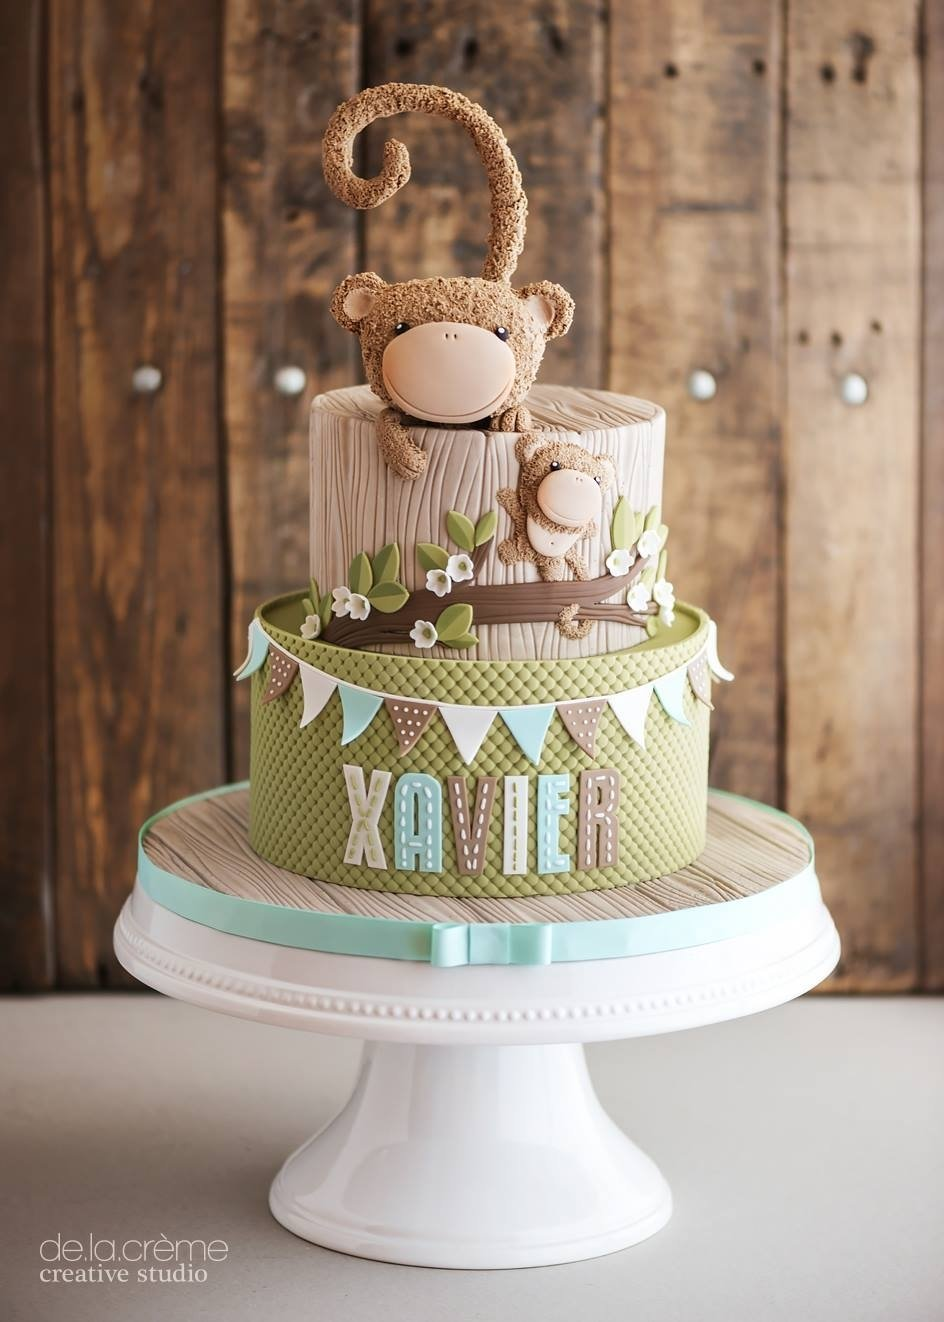 10 Wonderful Ideas For Baby Shower Cakes roundup of the cutest baby shower cakes tutorials and ideas my 2020